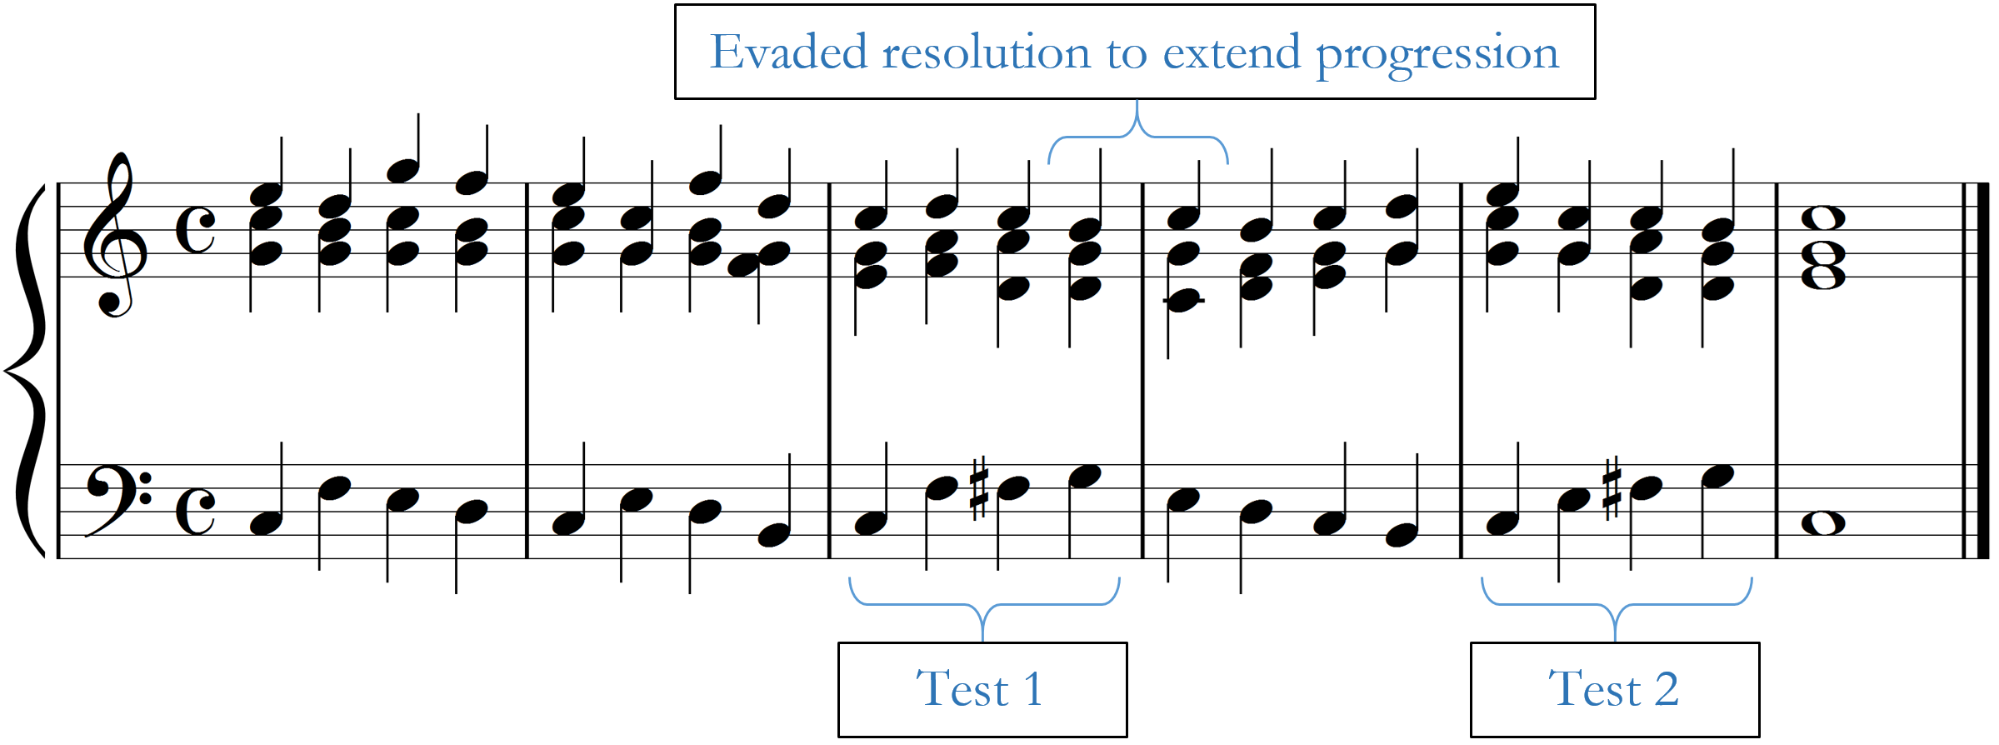 Four-measure, chorale-style progression that tests the problem progression in a new context and illustrates an evaded resolution.